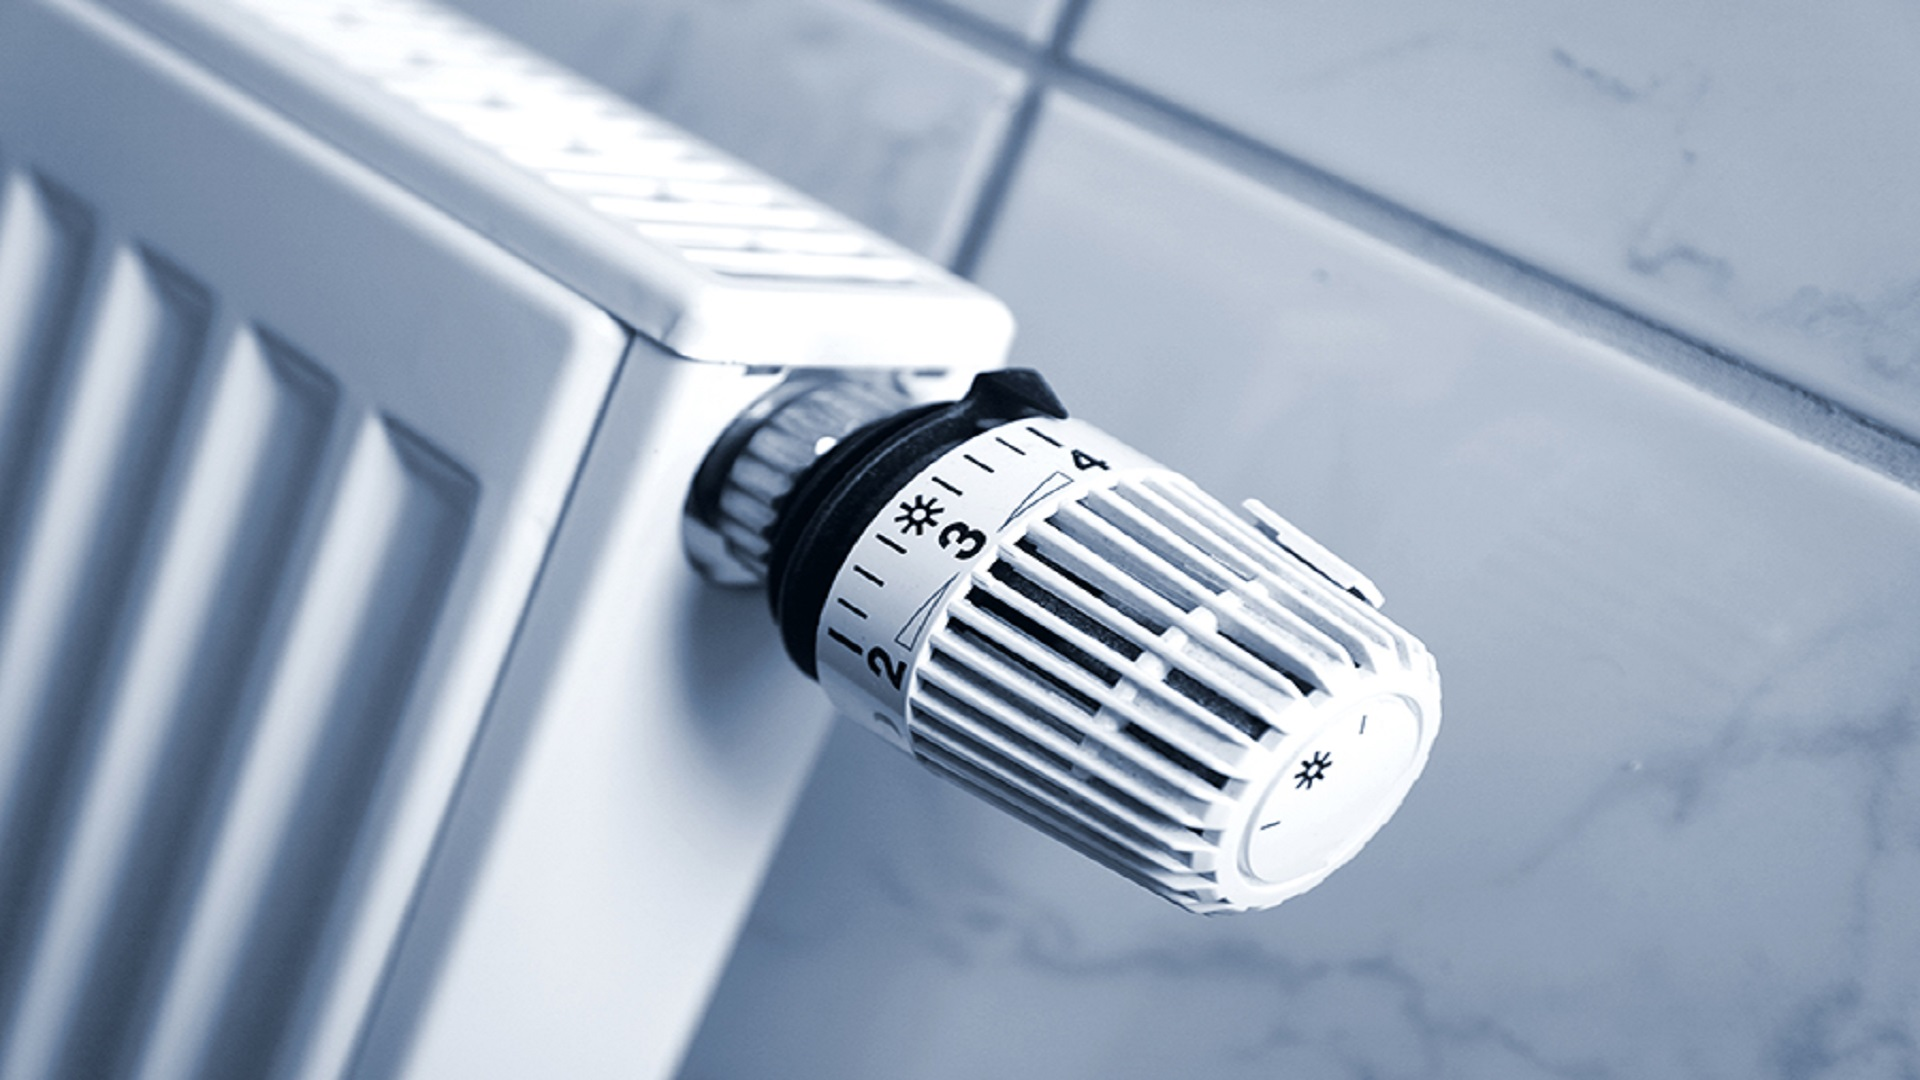 Central heating installations and repairs, Hyde, Tameside, Cheshire, Manchester